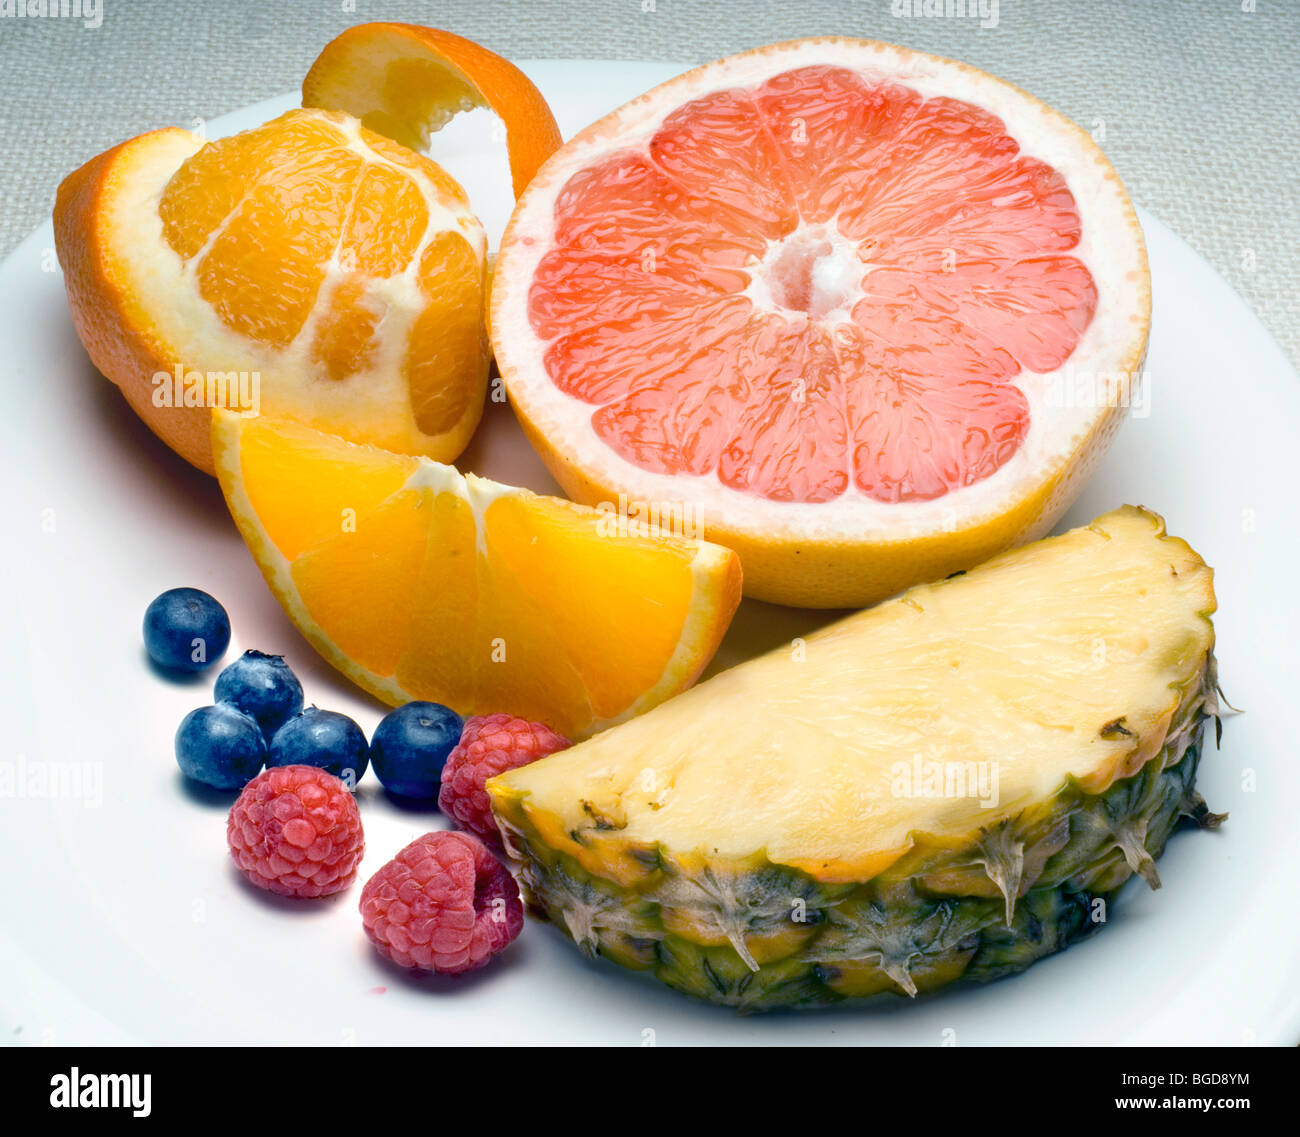 fruit plate - Stock Image